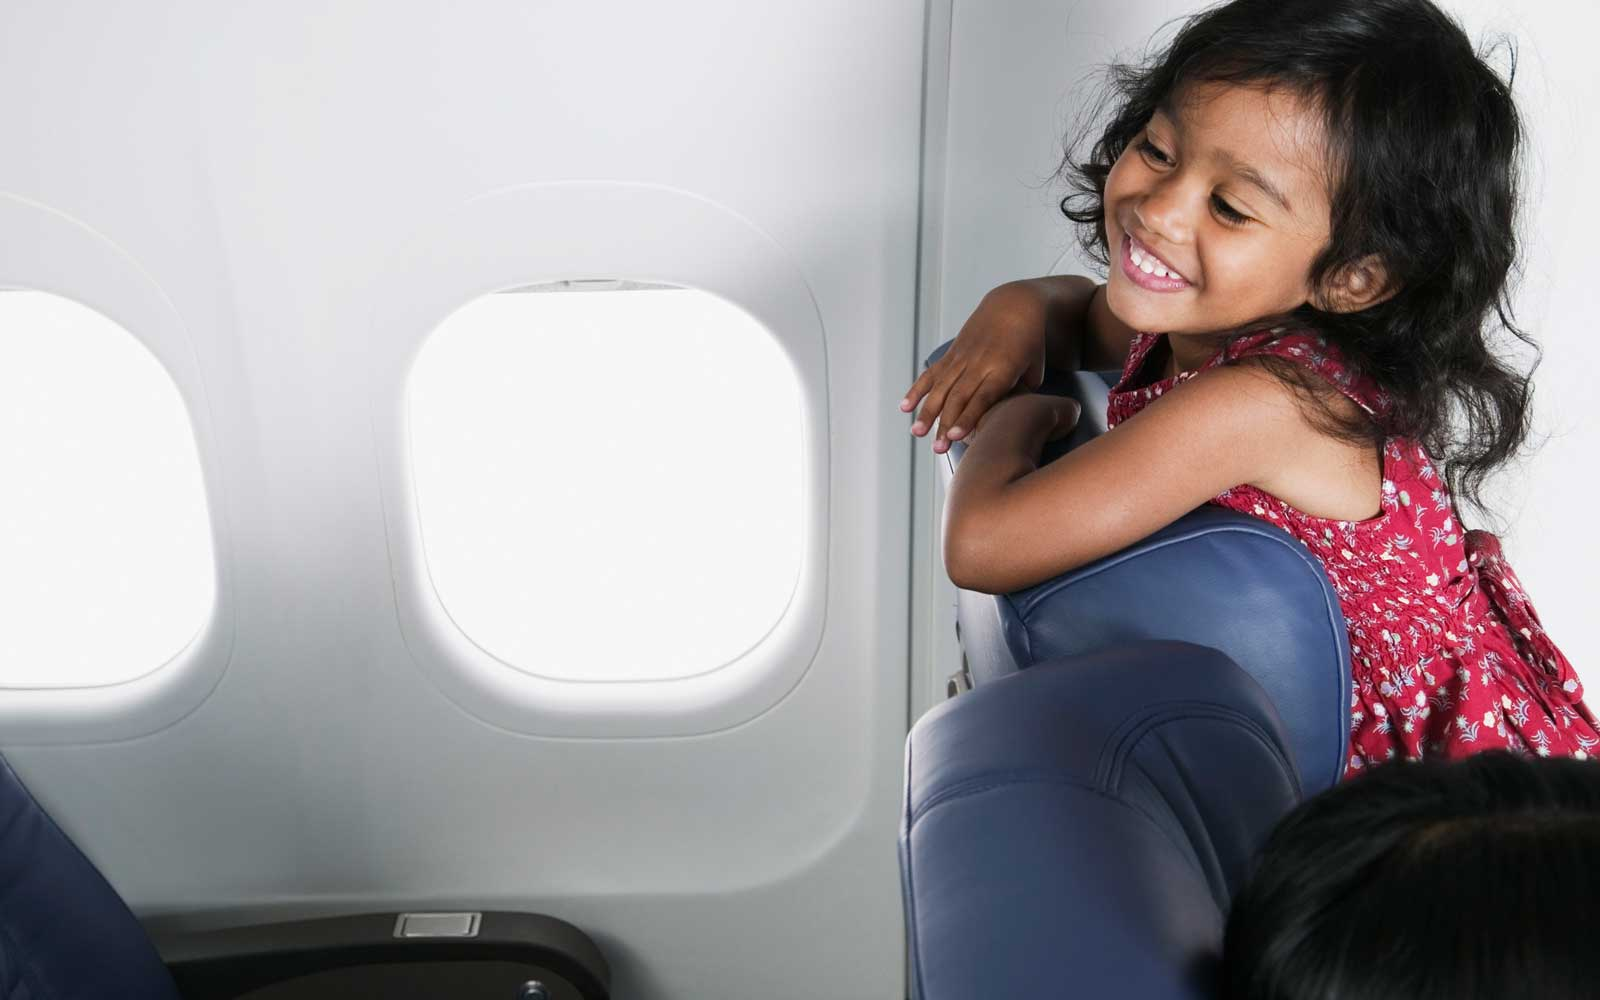 Small child on airplane